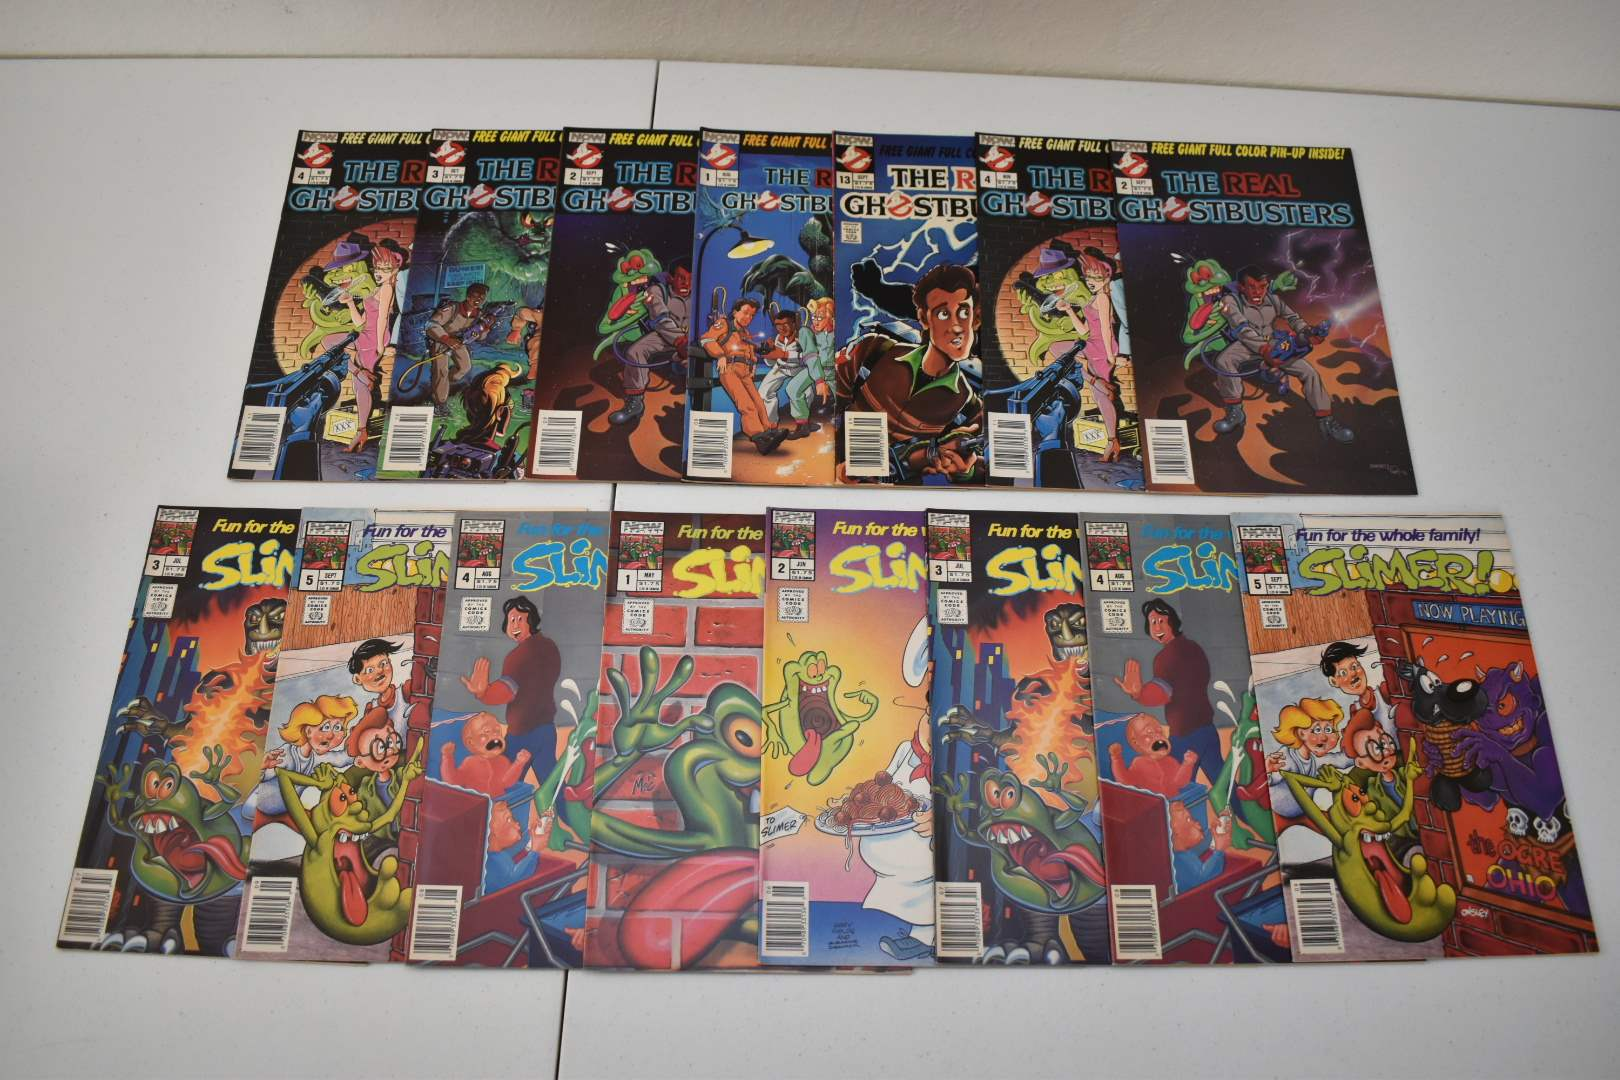 1980's Ghostbusters & Slimers Comics